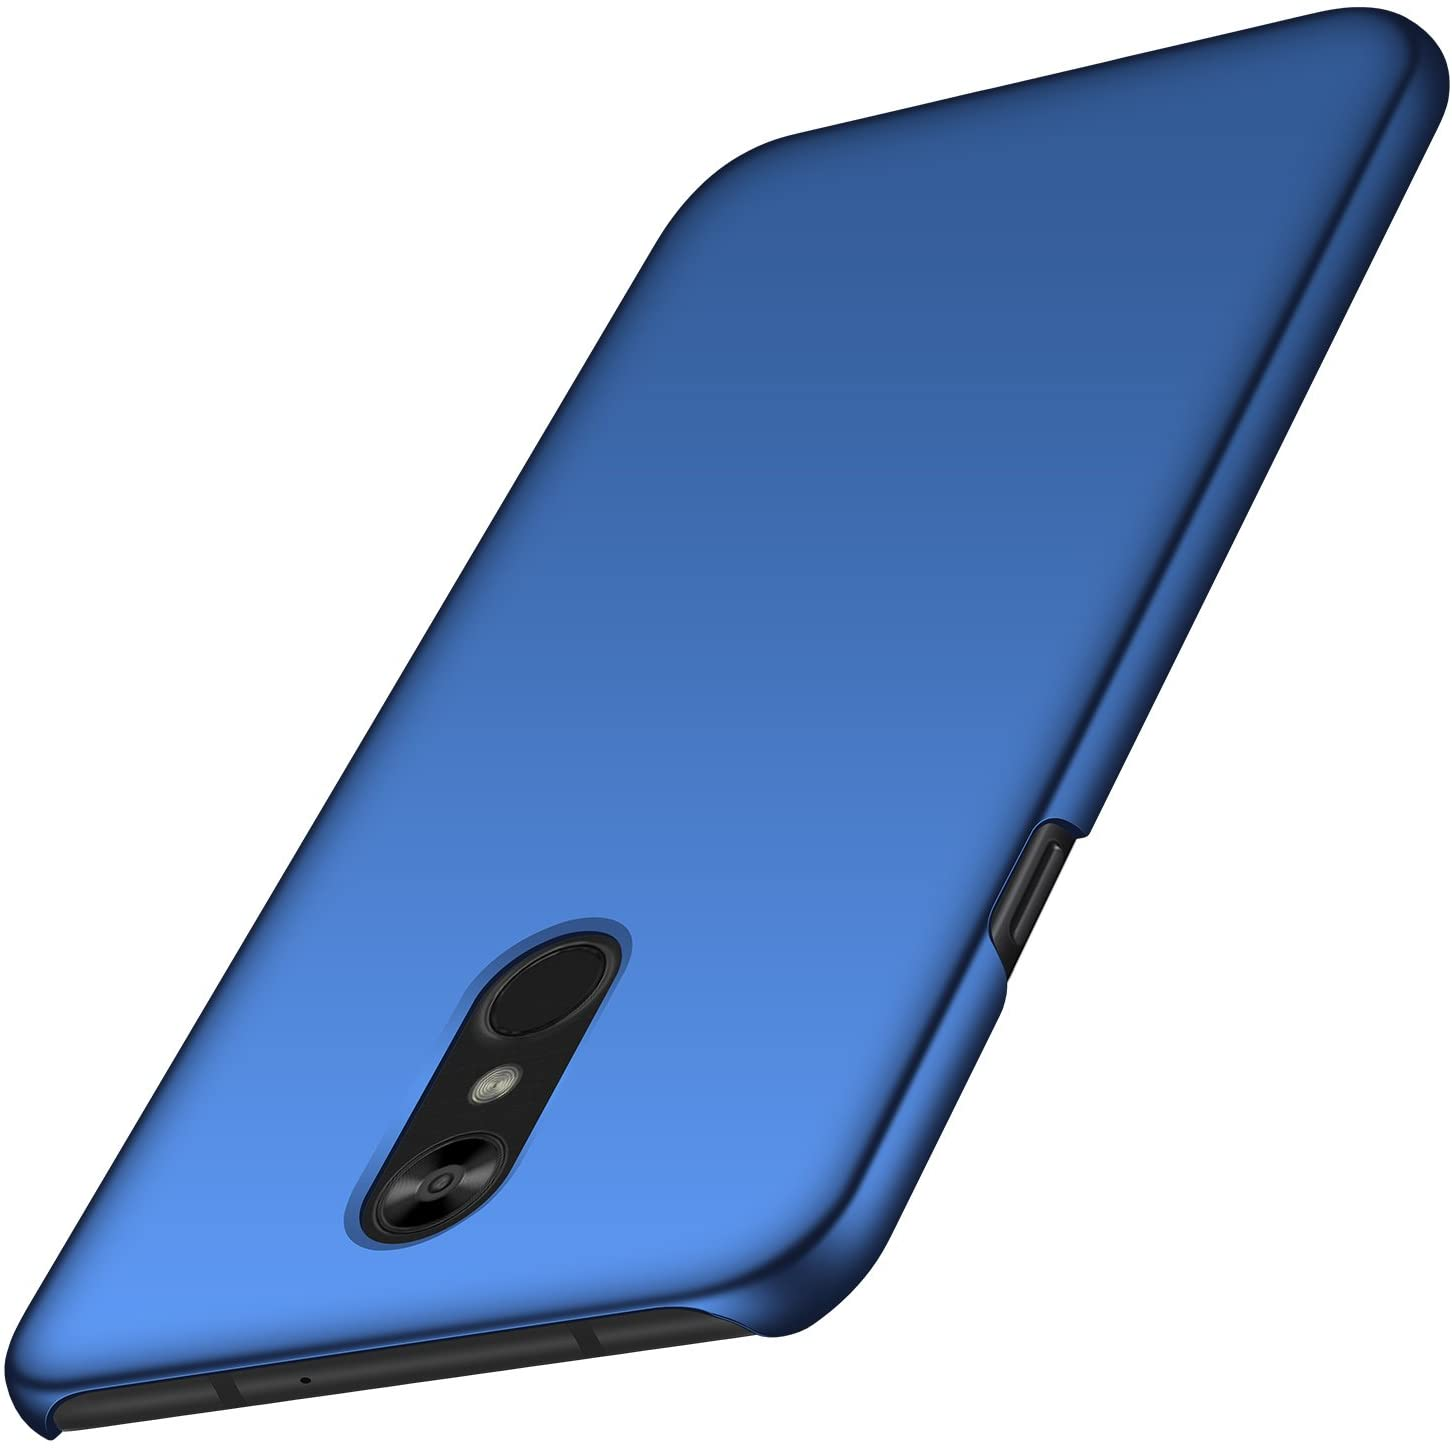 Arkour LG Stylo 4 Case, Minimalist Ultra Thin Slim Fit Smooth Matte Surface Hard PC Cover for LG Stylo 4 (Smooth Blue)